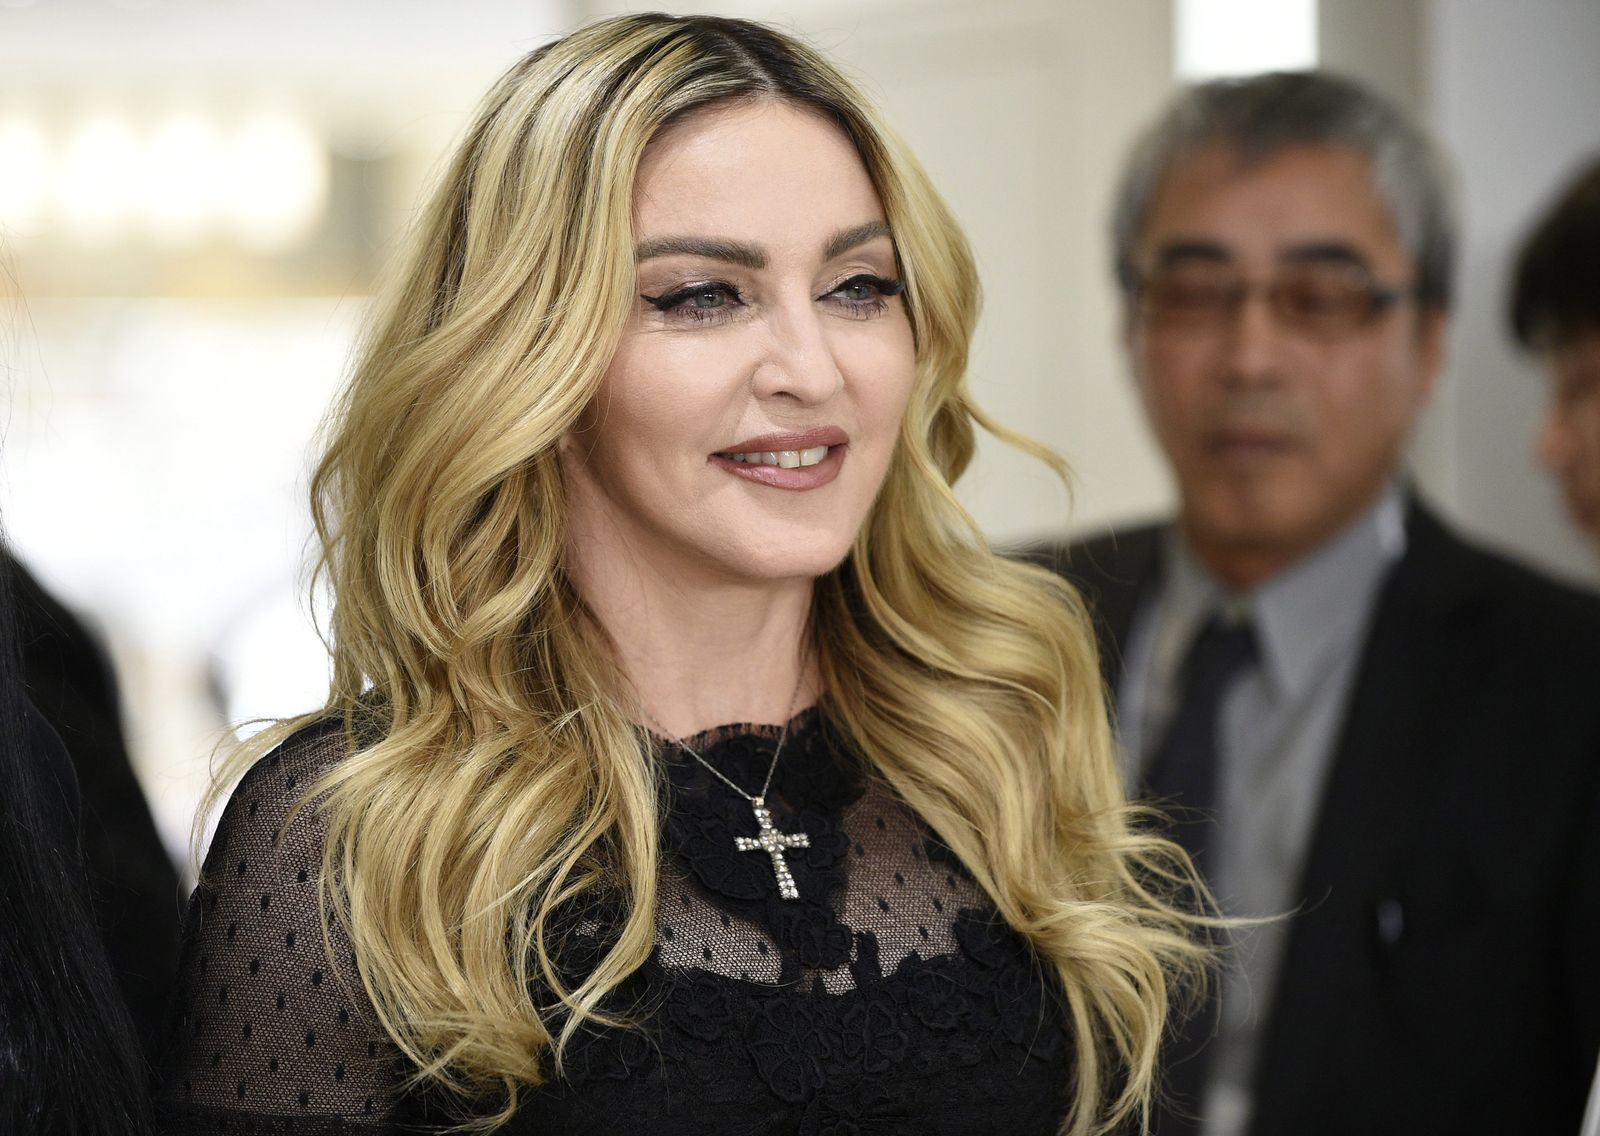 US singer, songwriter and actress Madonna